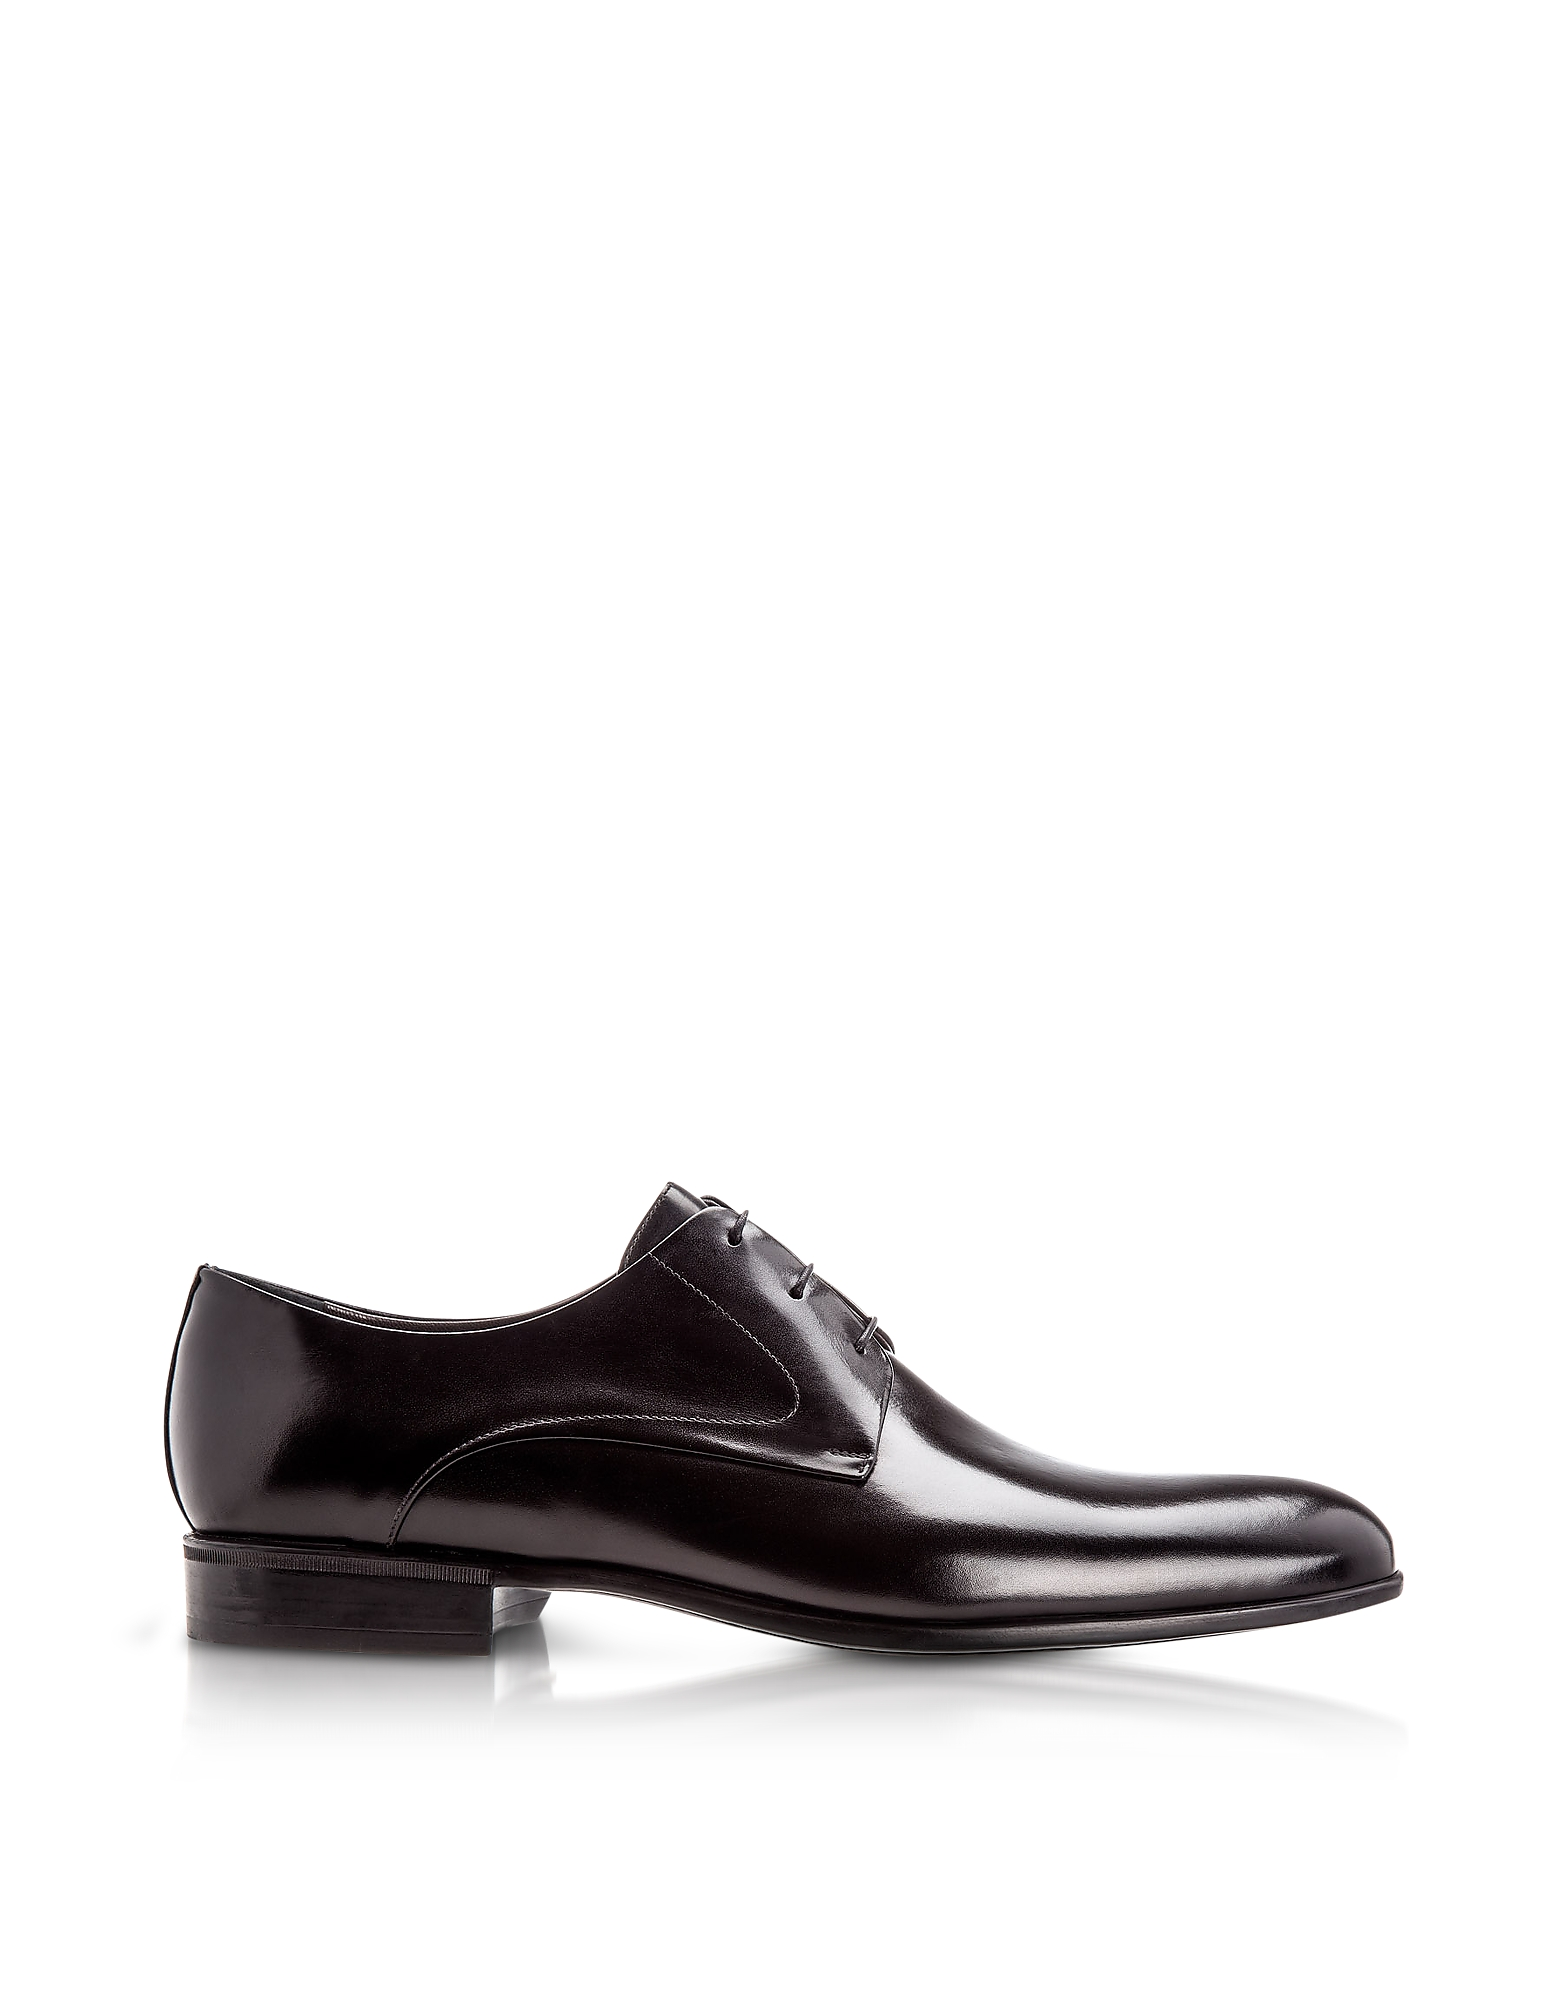 Moreschi Shoes, Liverpool Black Calfskin Derby Shoes